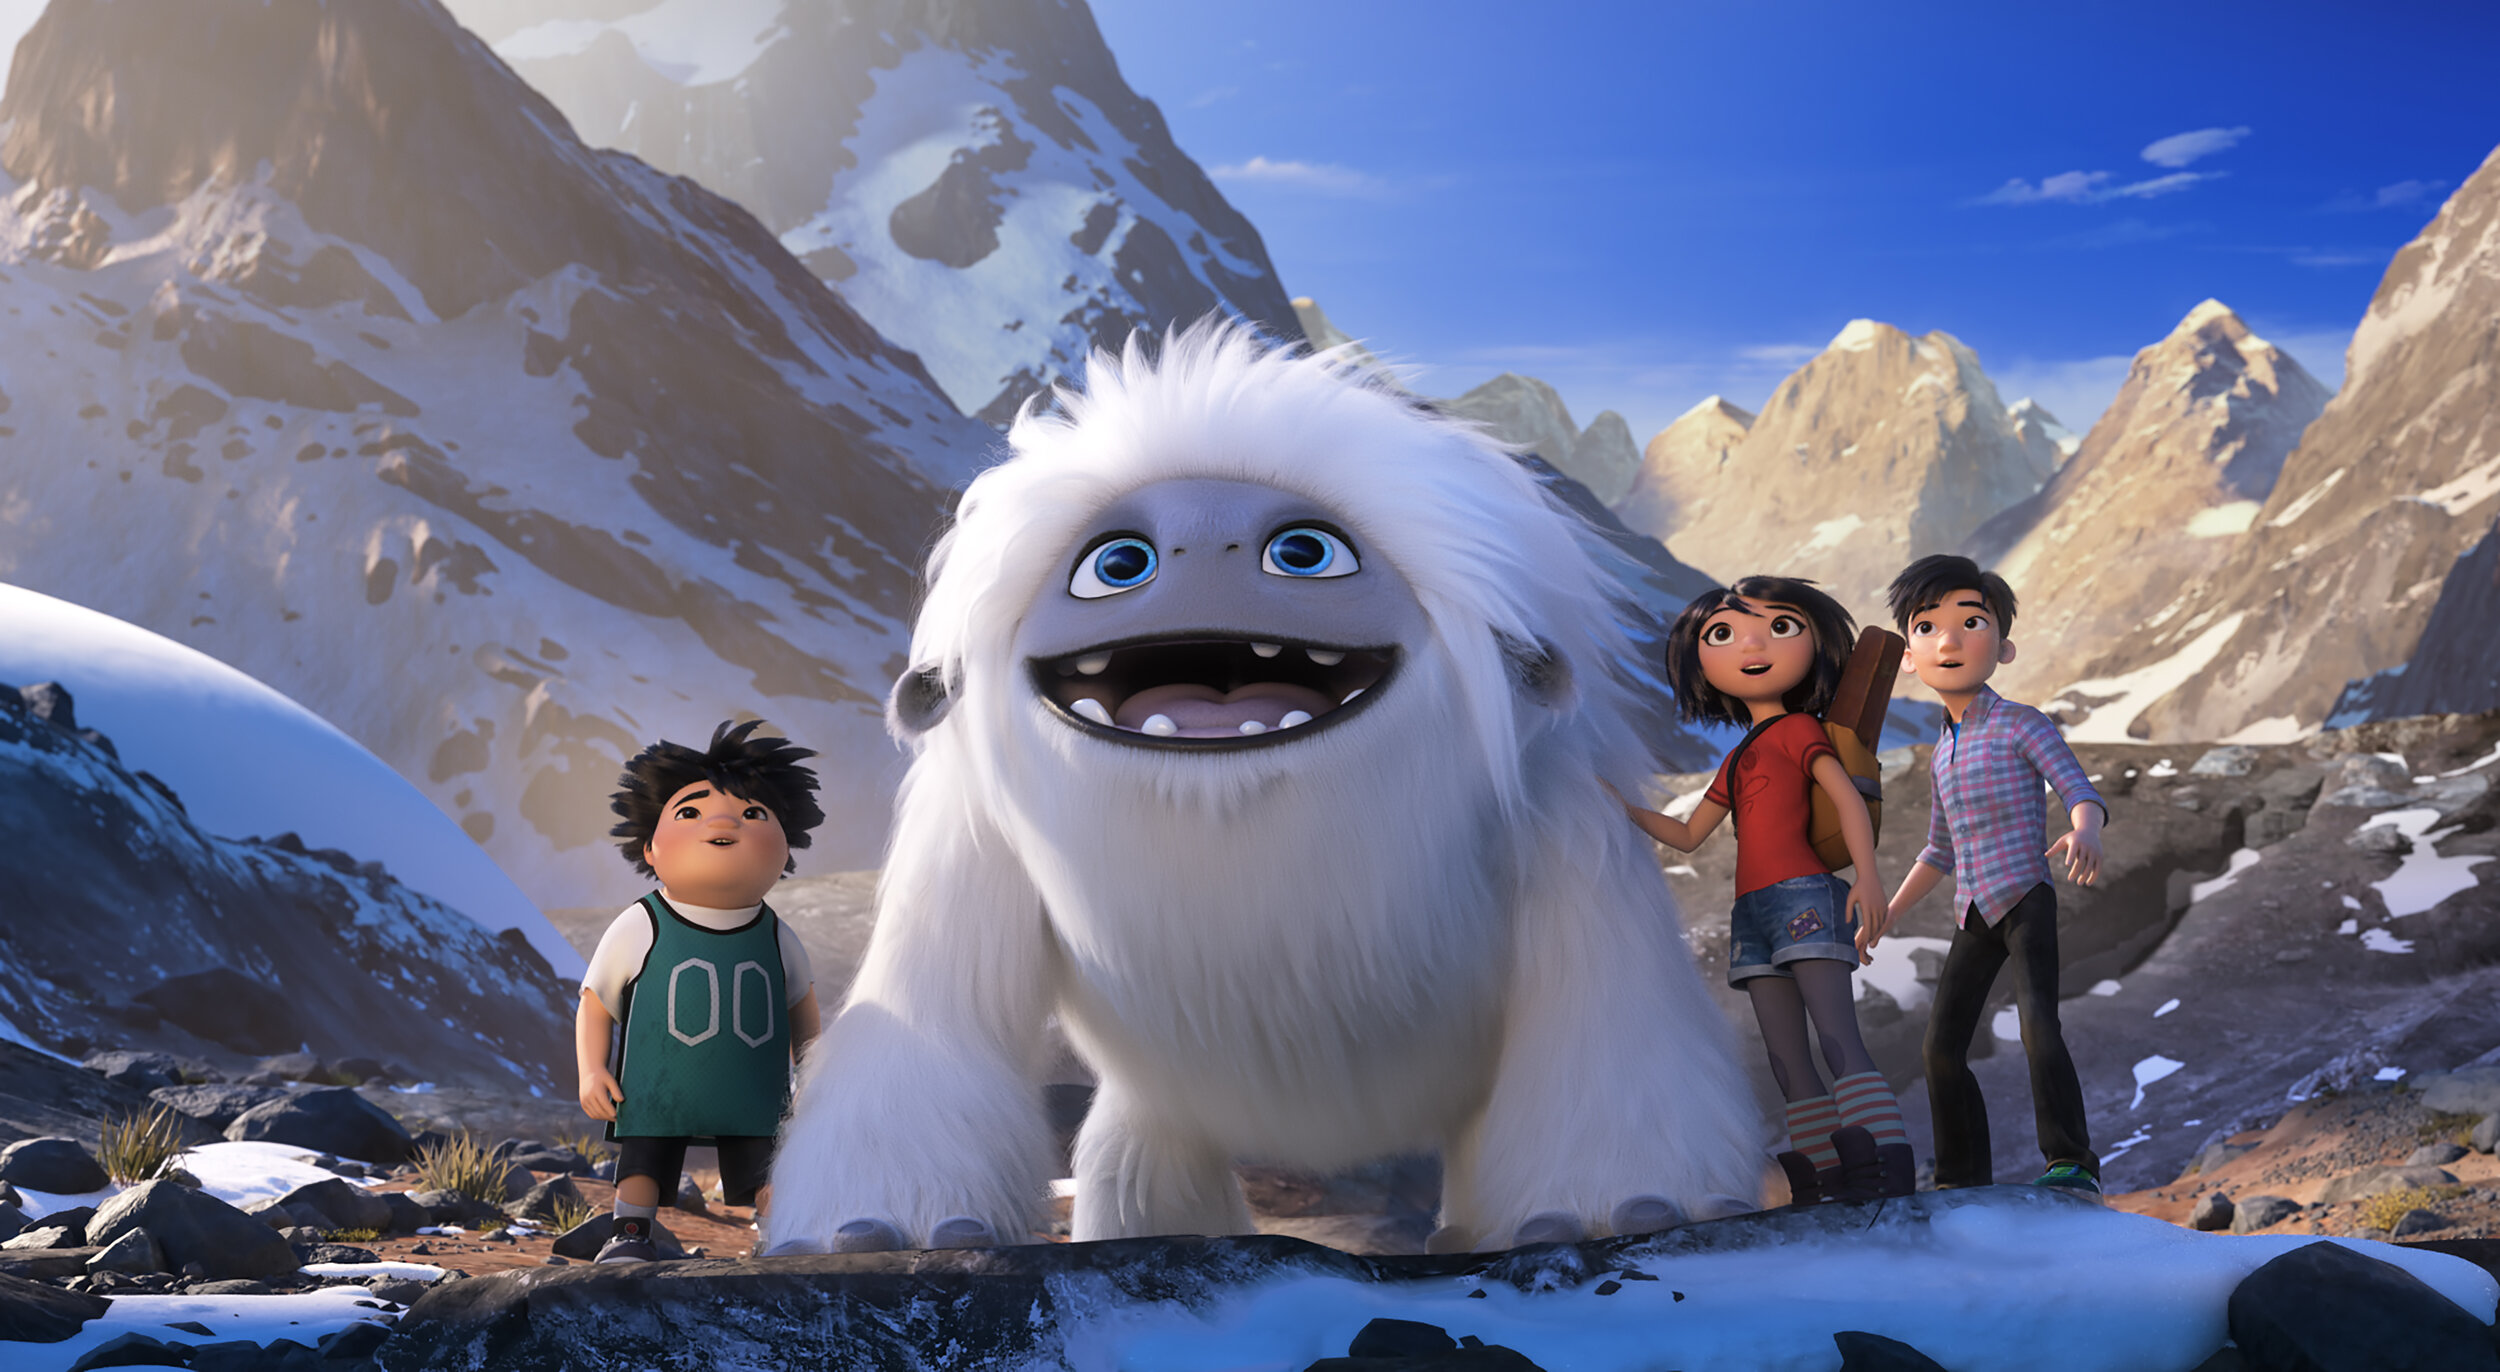 Yi, and her friends Jin and Peng escort their pal Everest back to his Himalayan home in Abominable